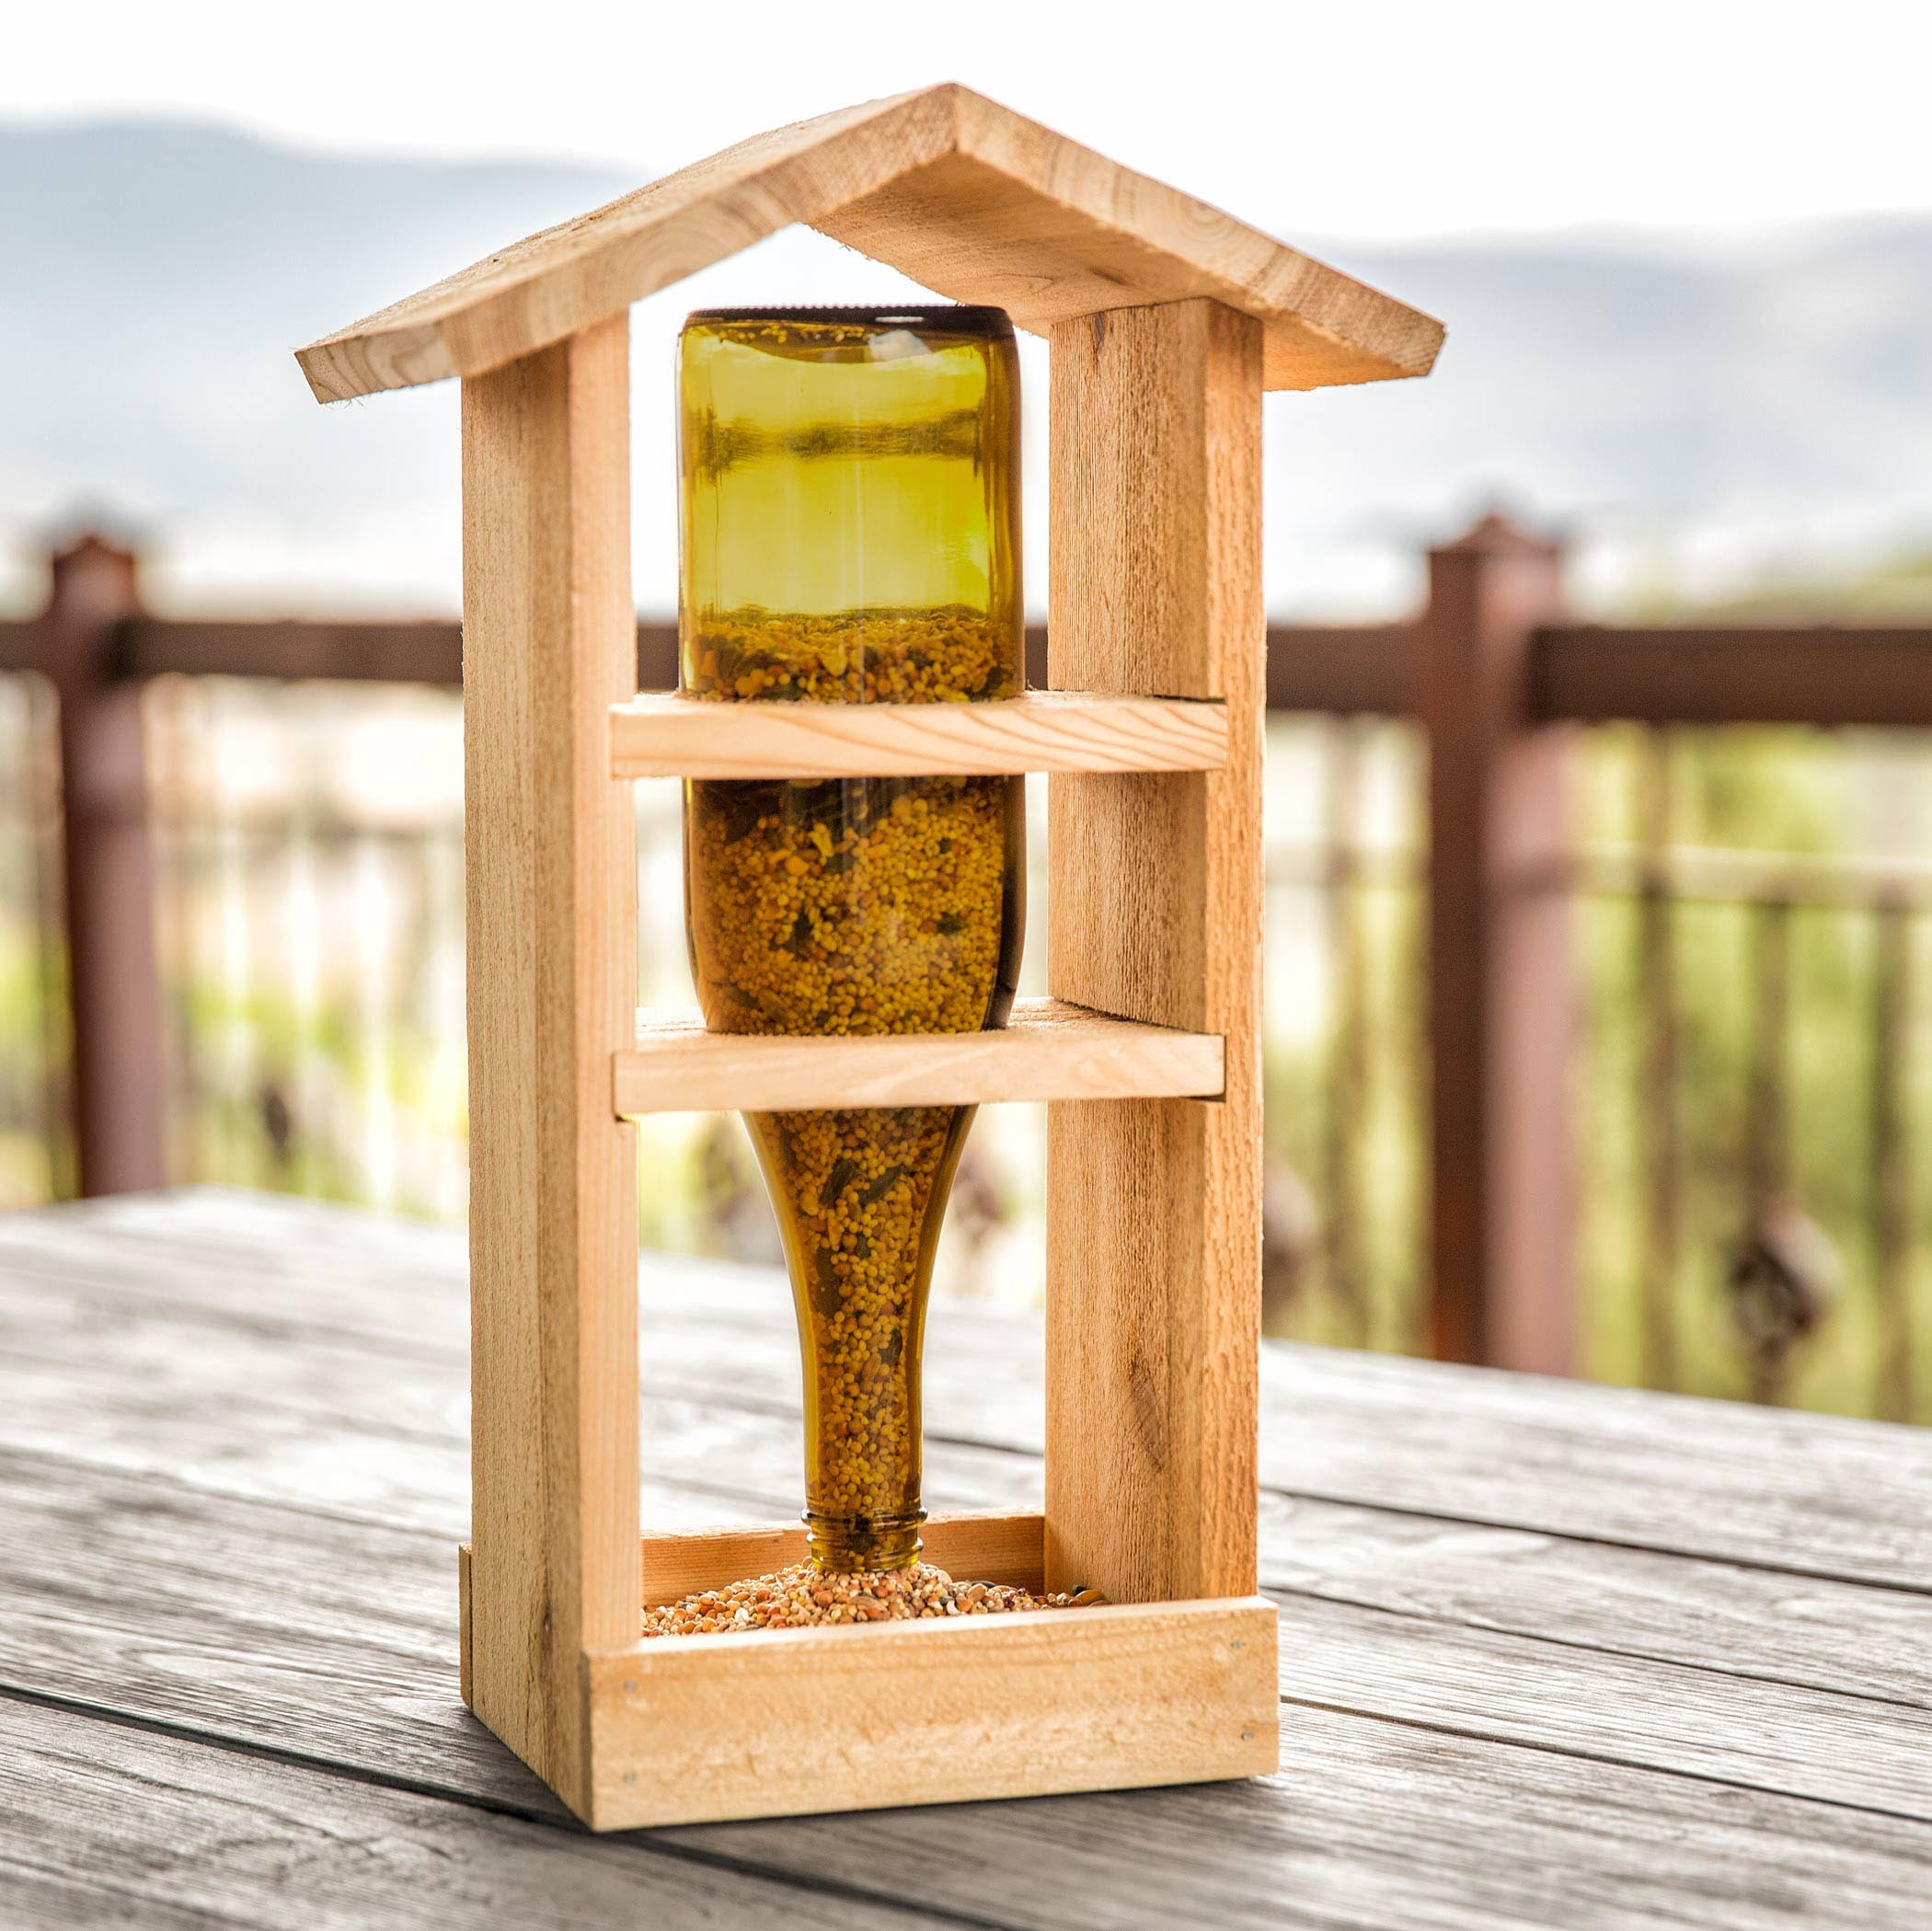 Homemade Wooden Bird Feeders